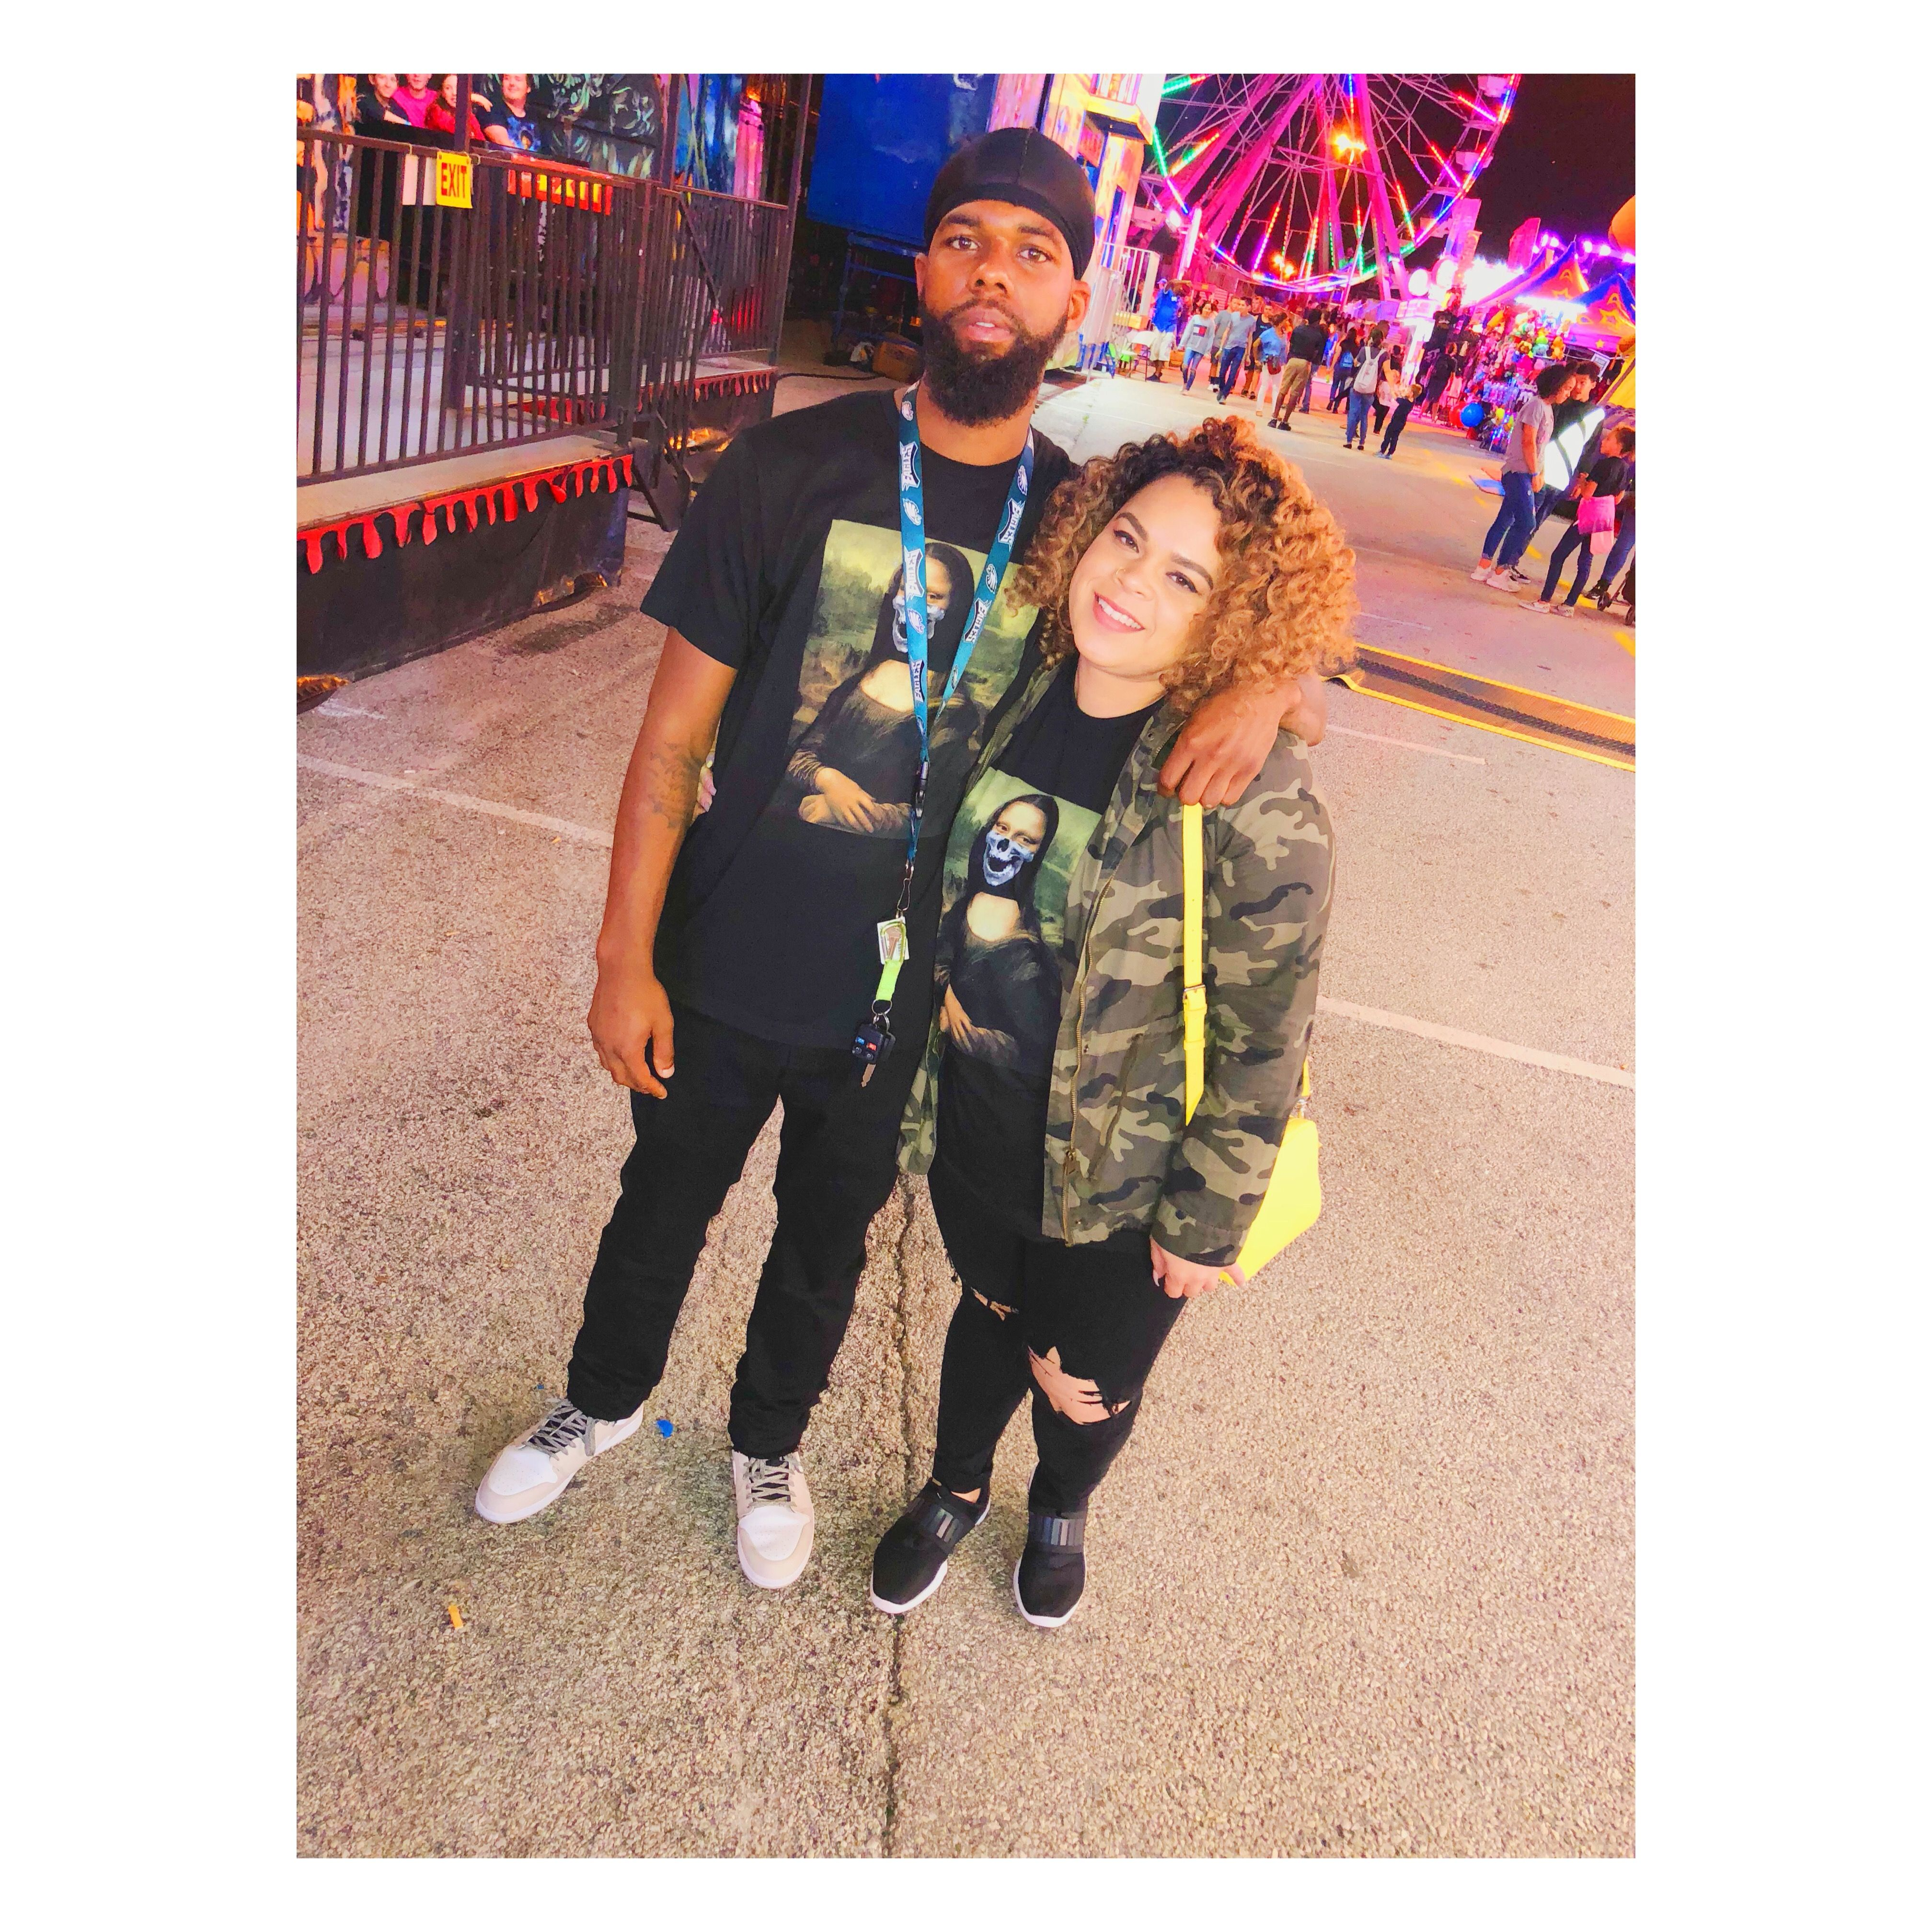 dc3e175dbe880 Clothes Couple Relationship goals Matching outfit Fashion Fashion nova Men's  styles Street style Fair Vibes